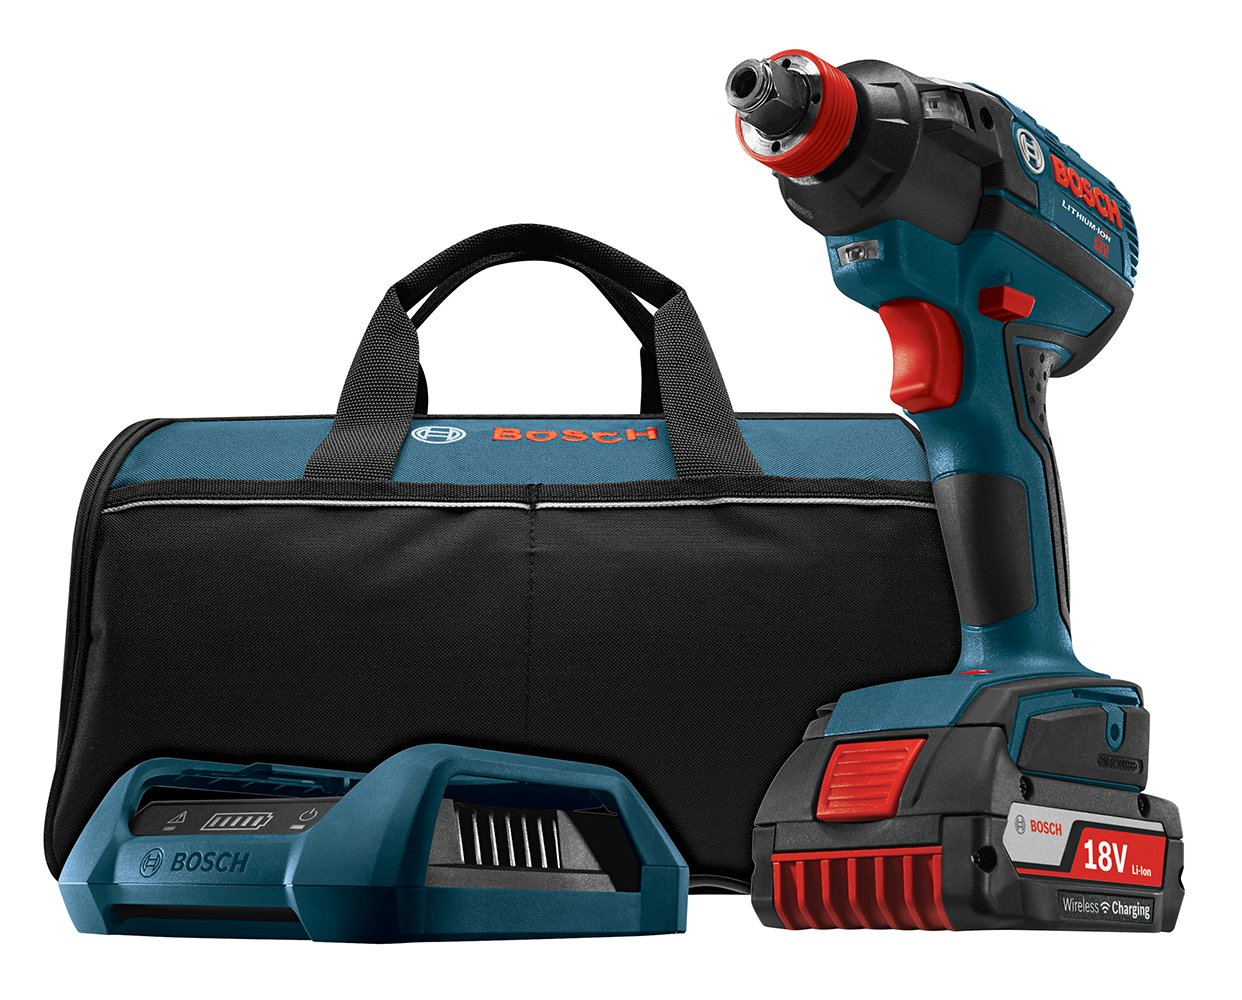 Bosch IDH182WC-102 18-Volt Lithium-Ion Wireless Charging Kit with Brushless Socket Ready Impact Driver, 1 Wireless Battery, Charger and Contractor Bag